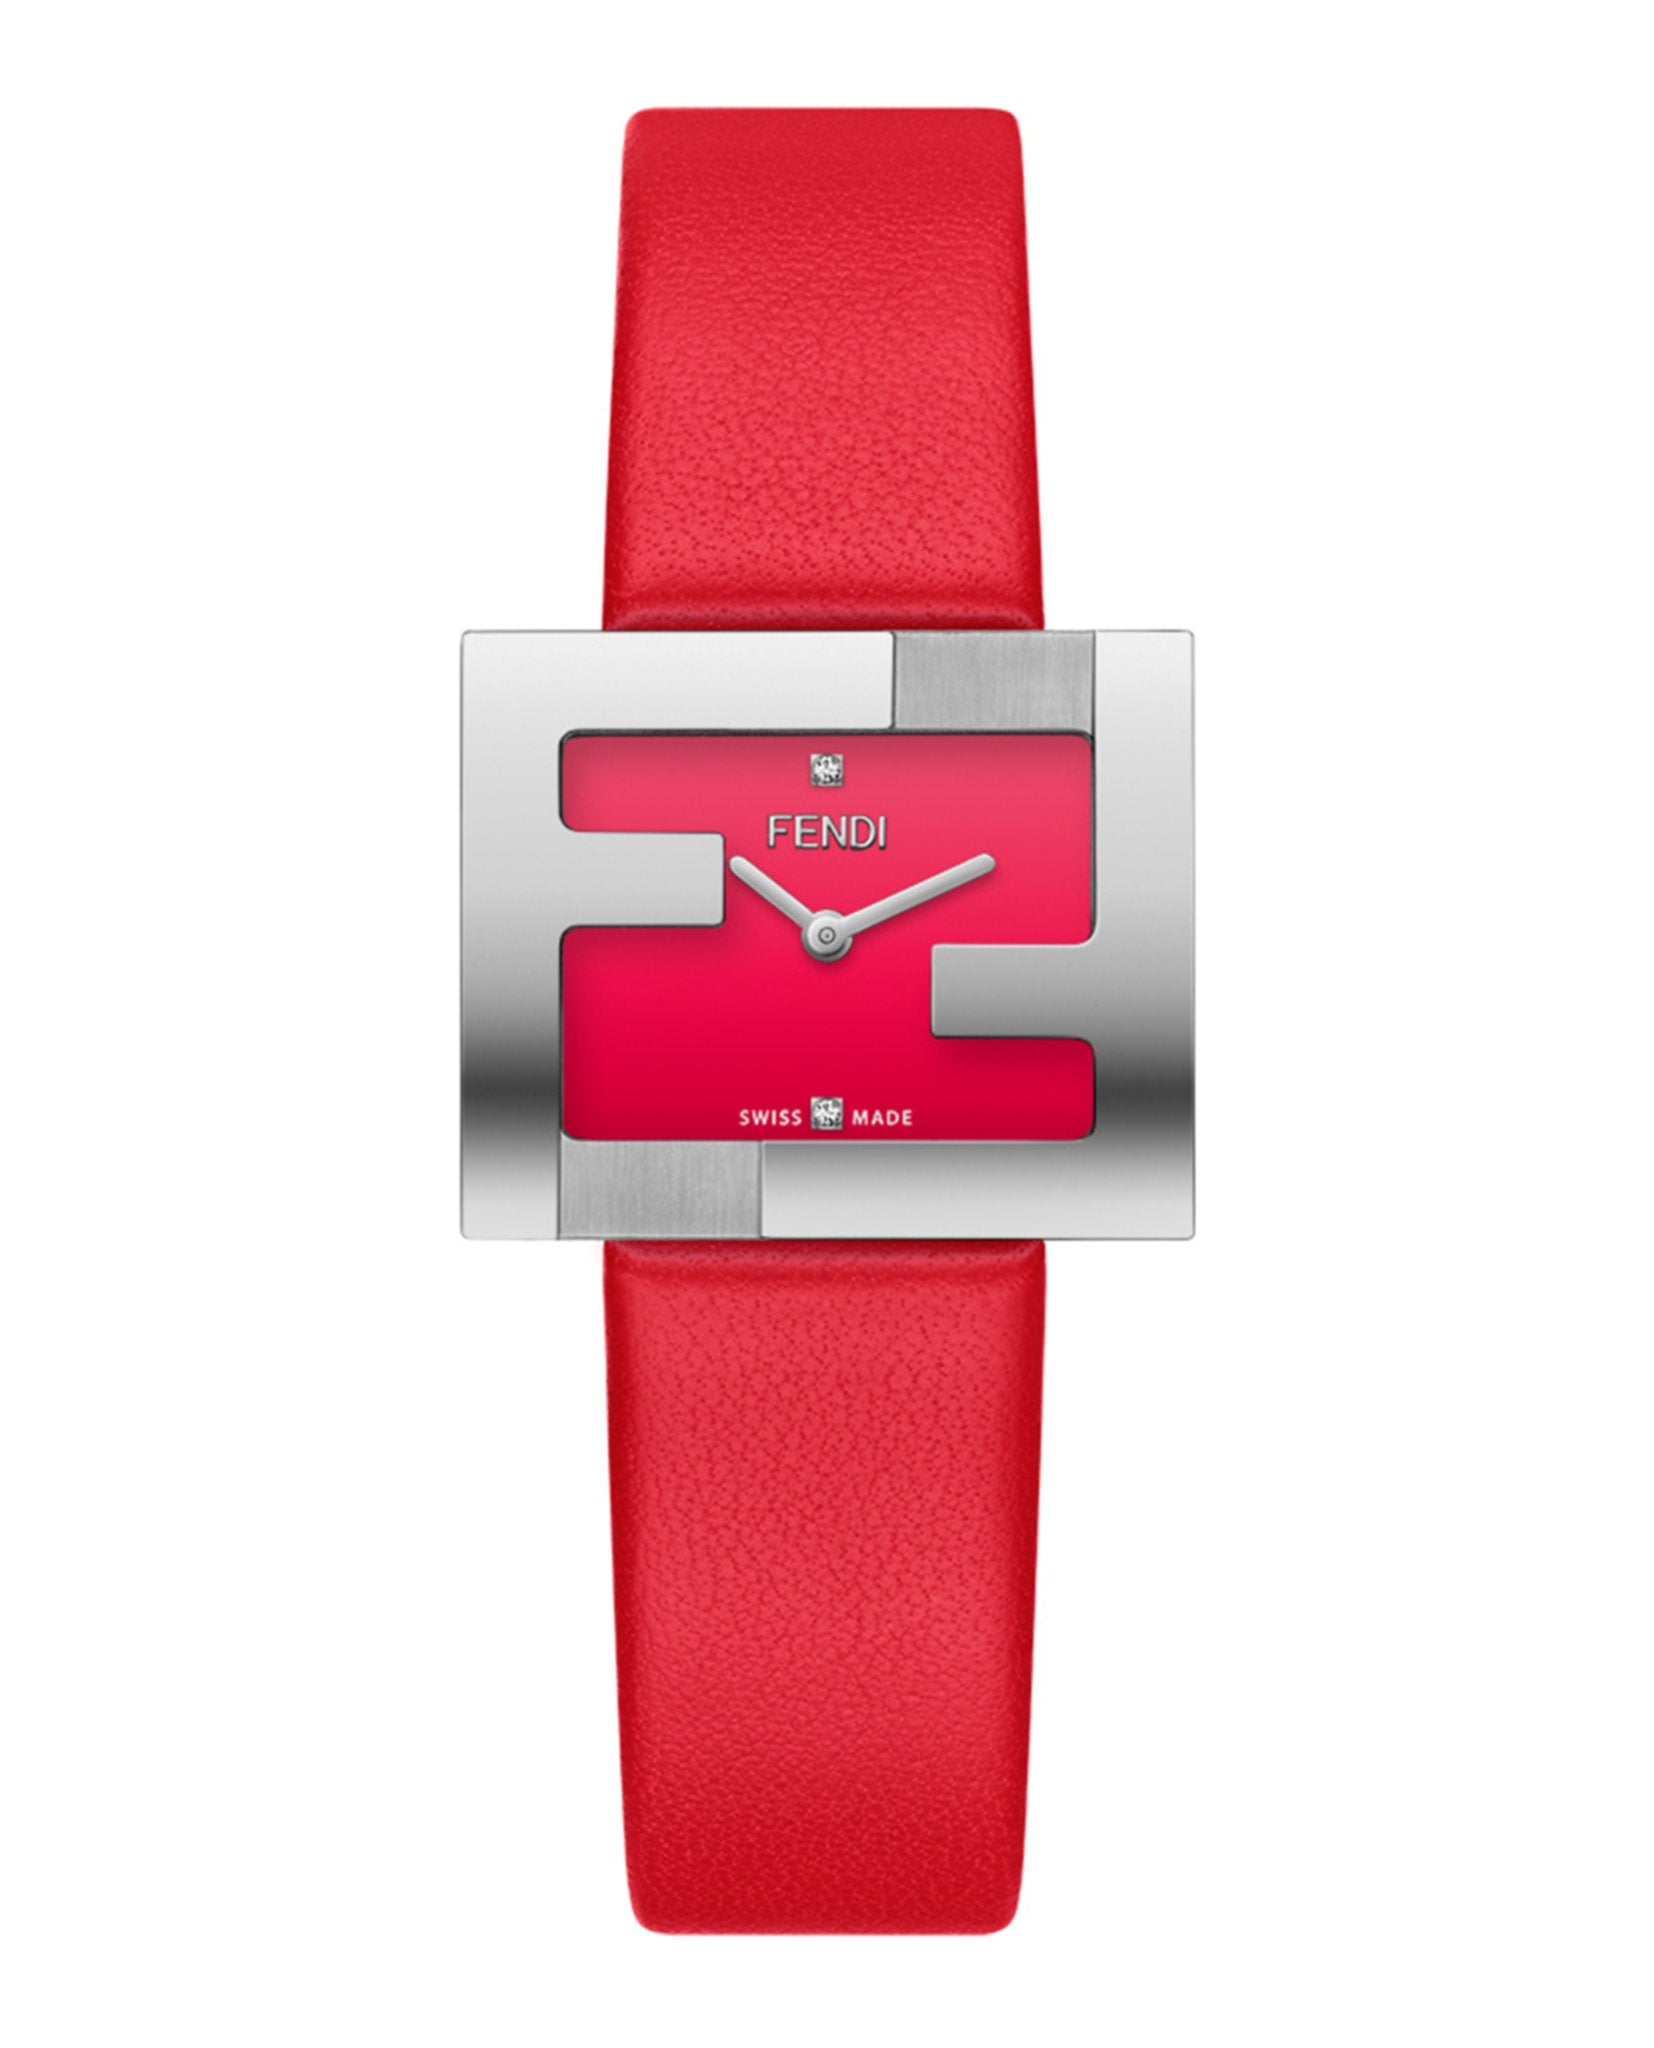 Fendi Fendimania Watch